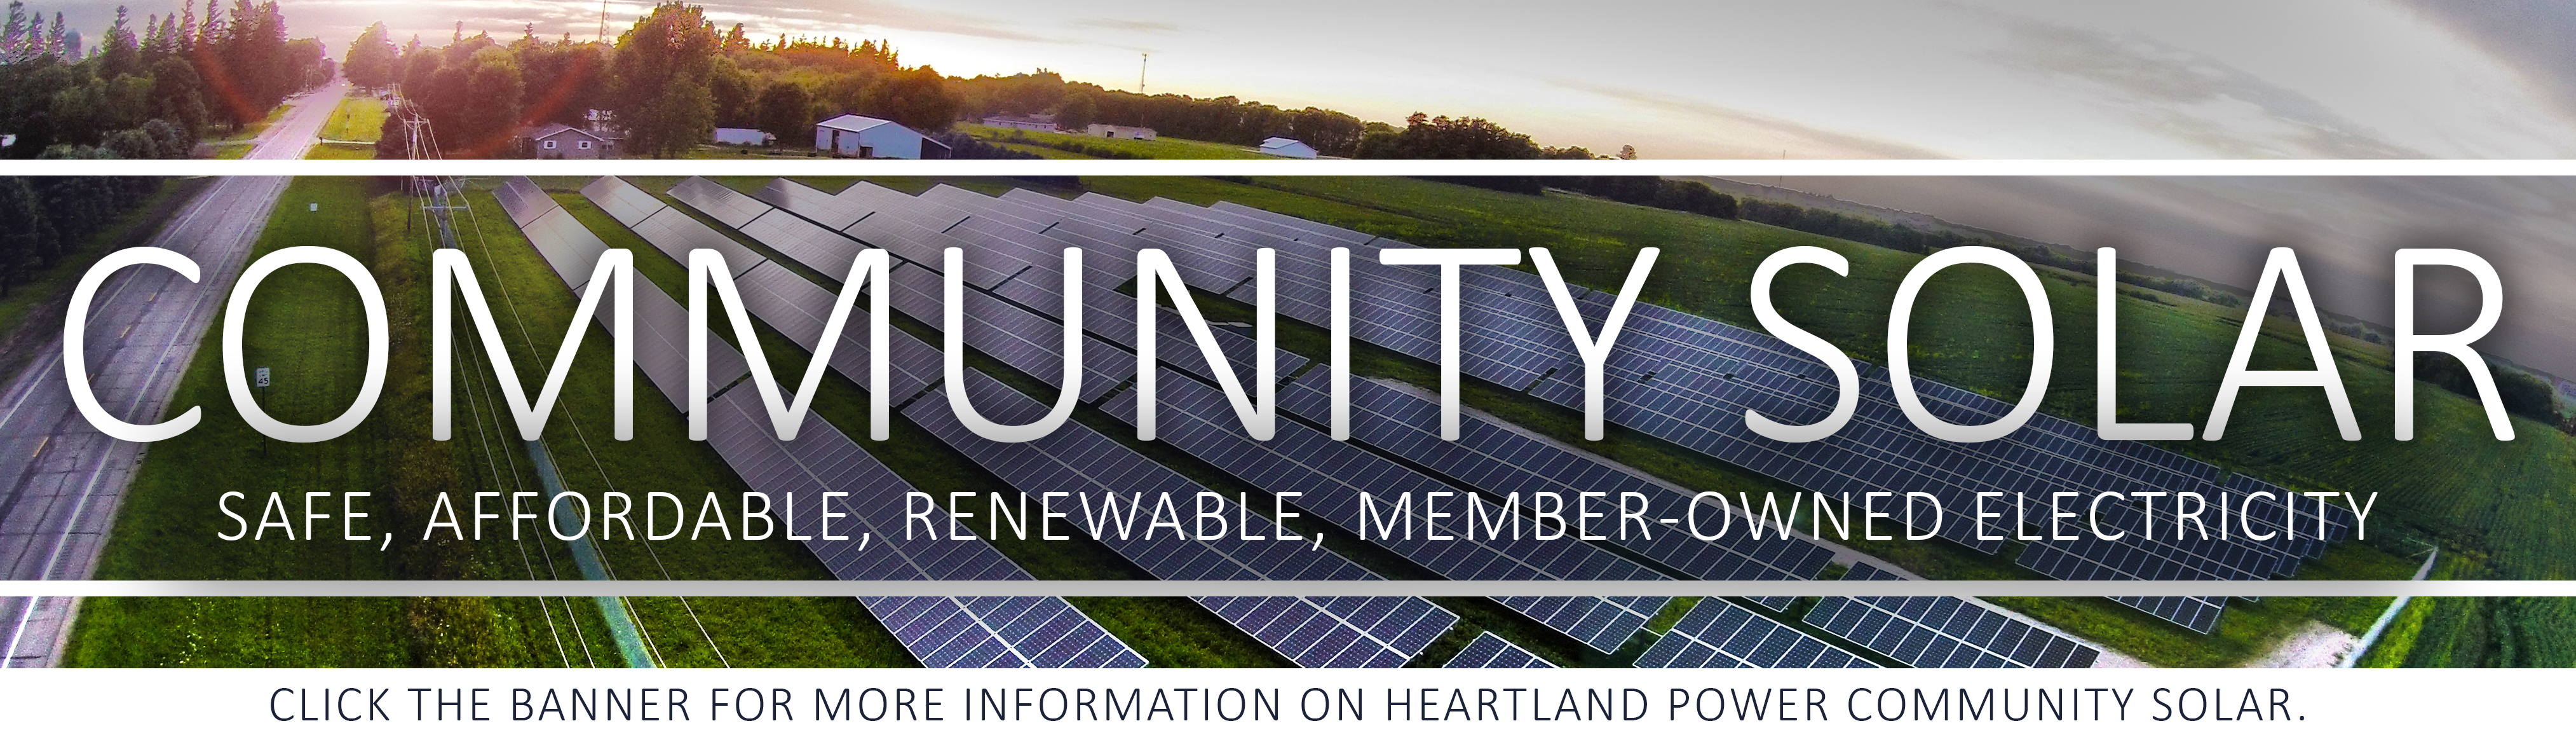 Click here for more information on Heartland Power's community solar array!